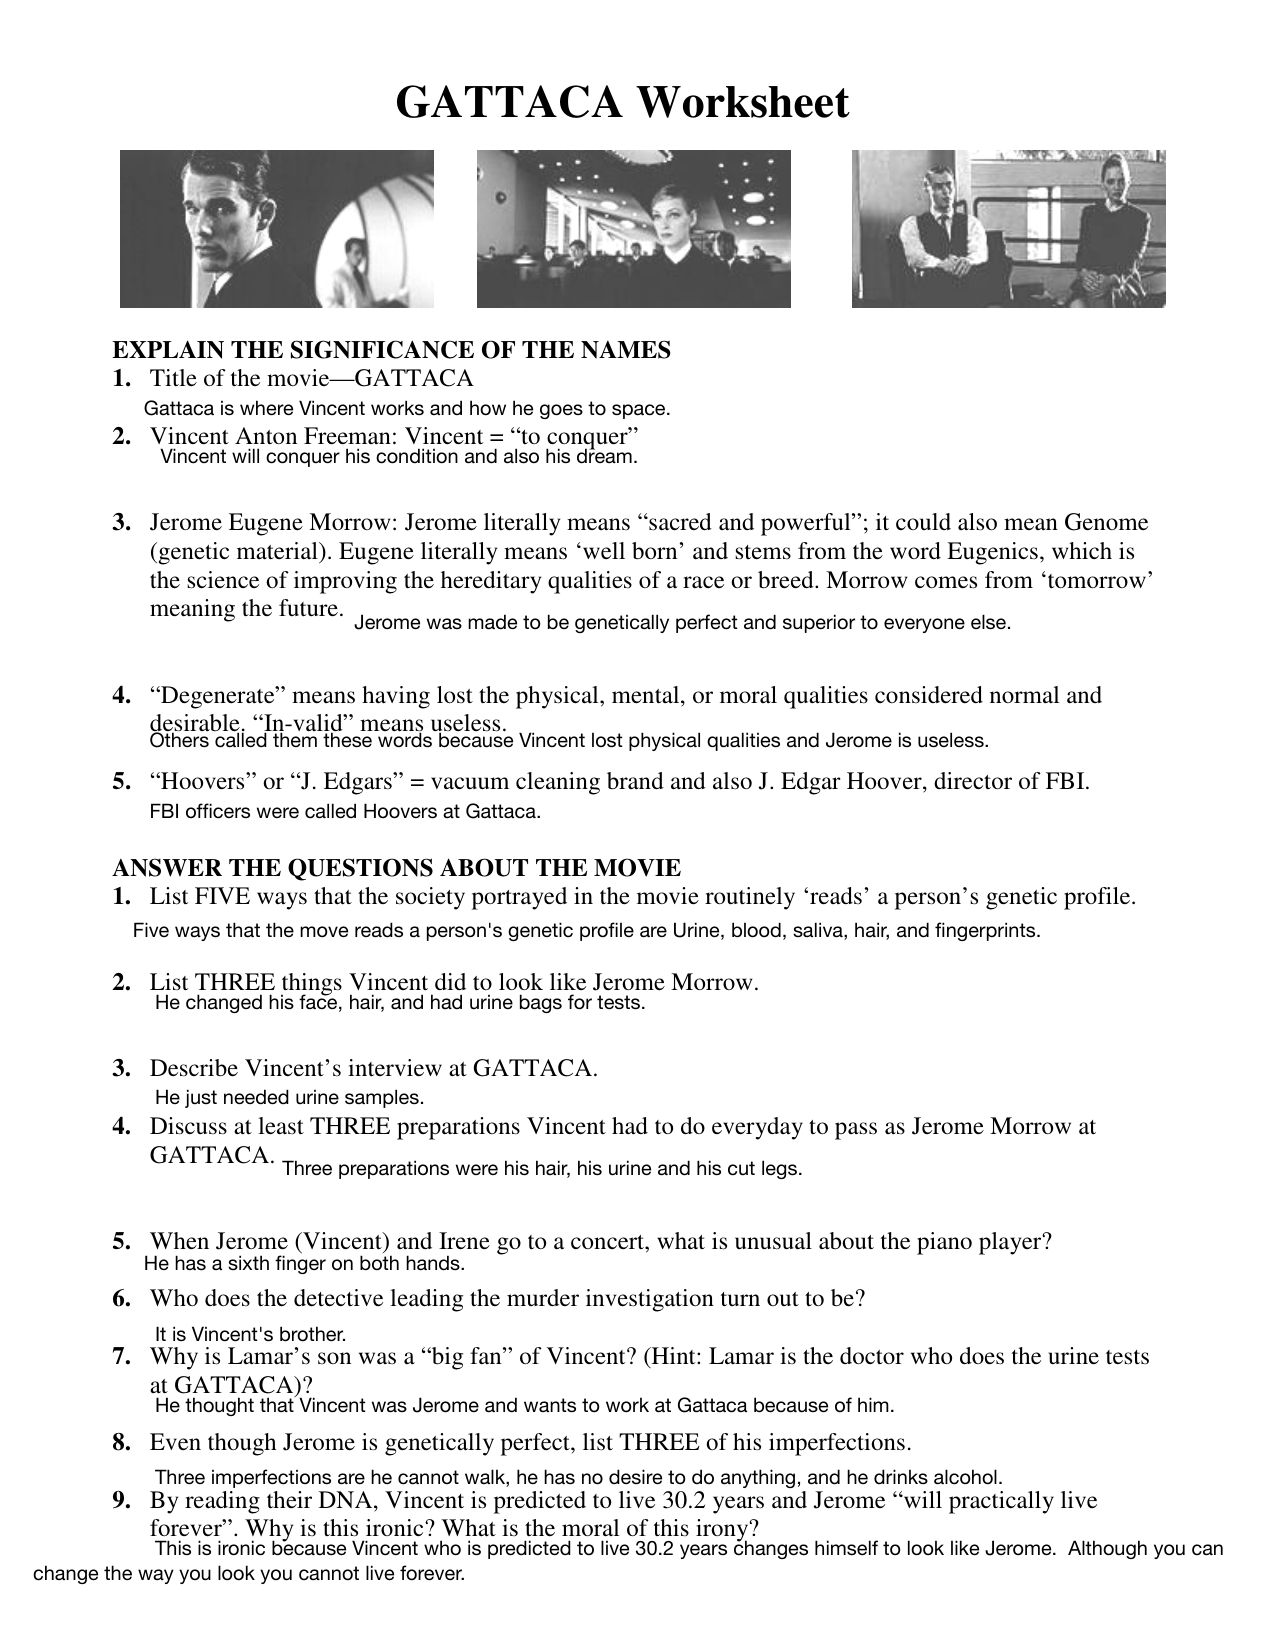 31 Fresh The Movie Worksheet Answers